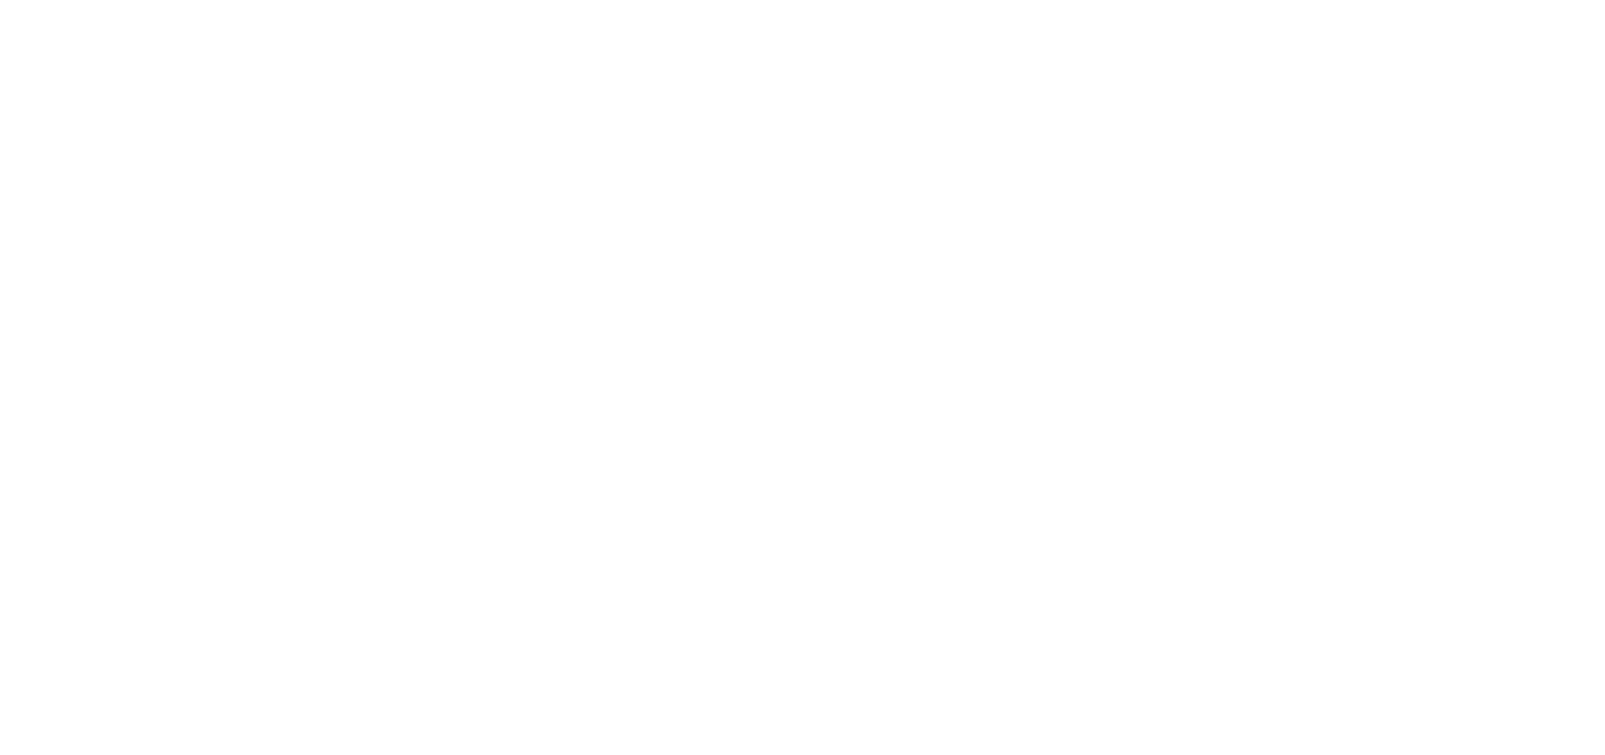 Adara Overland Park Offer 1, 2, And 3-Bedroom Apartments With Attached  Garages In A Neighborhood Setting With Superior Services.